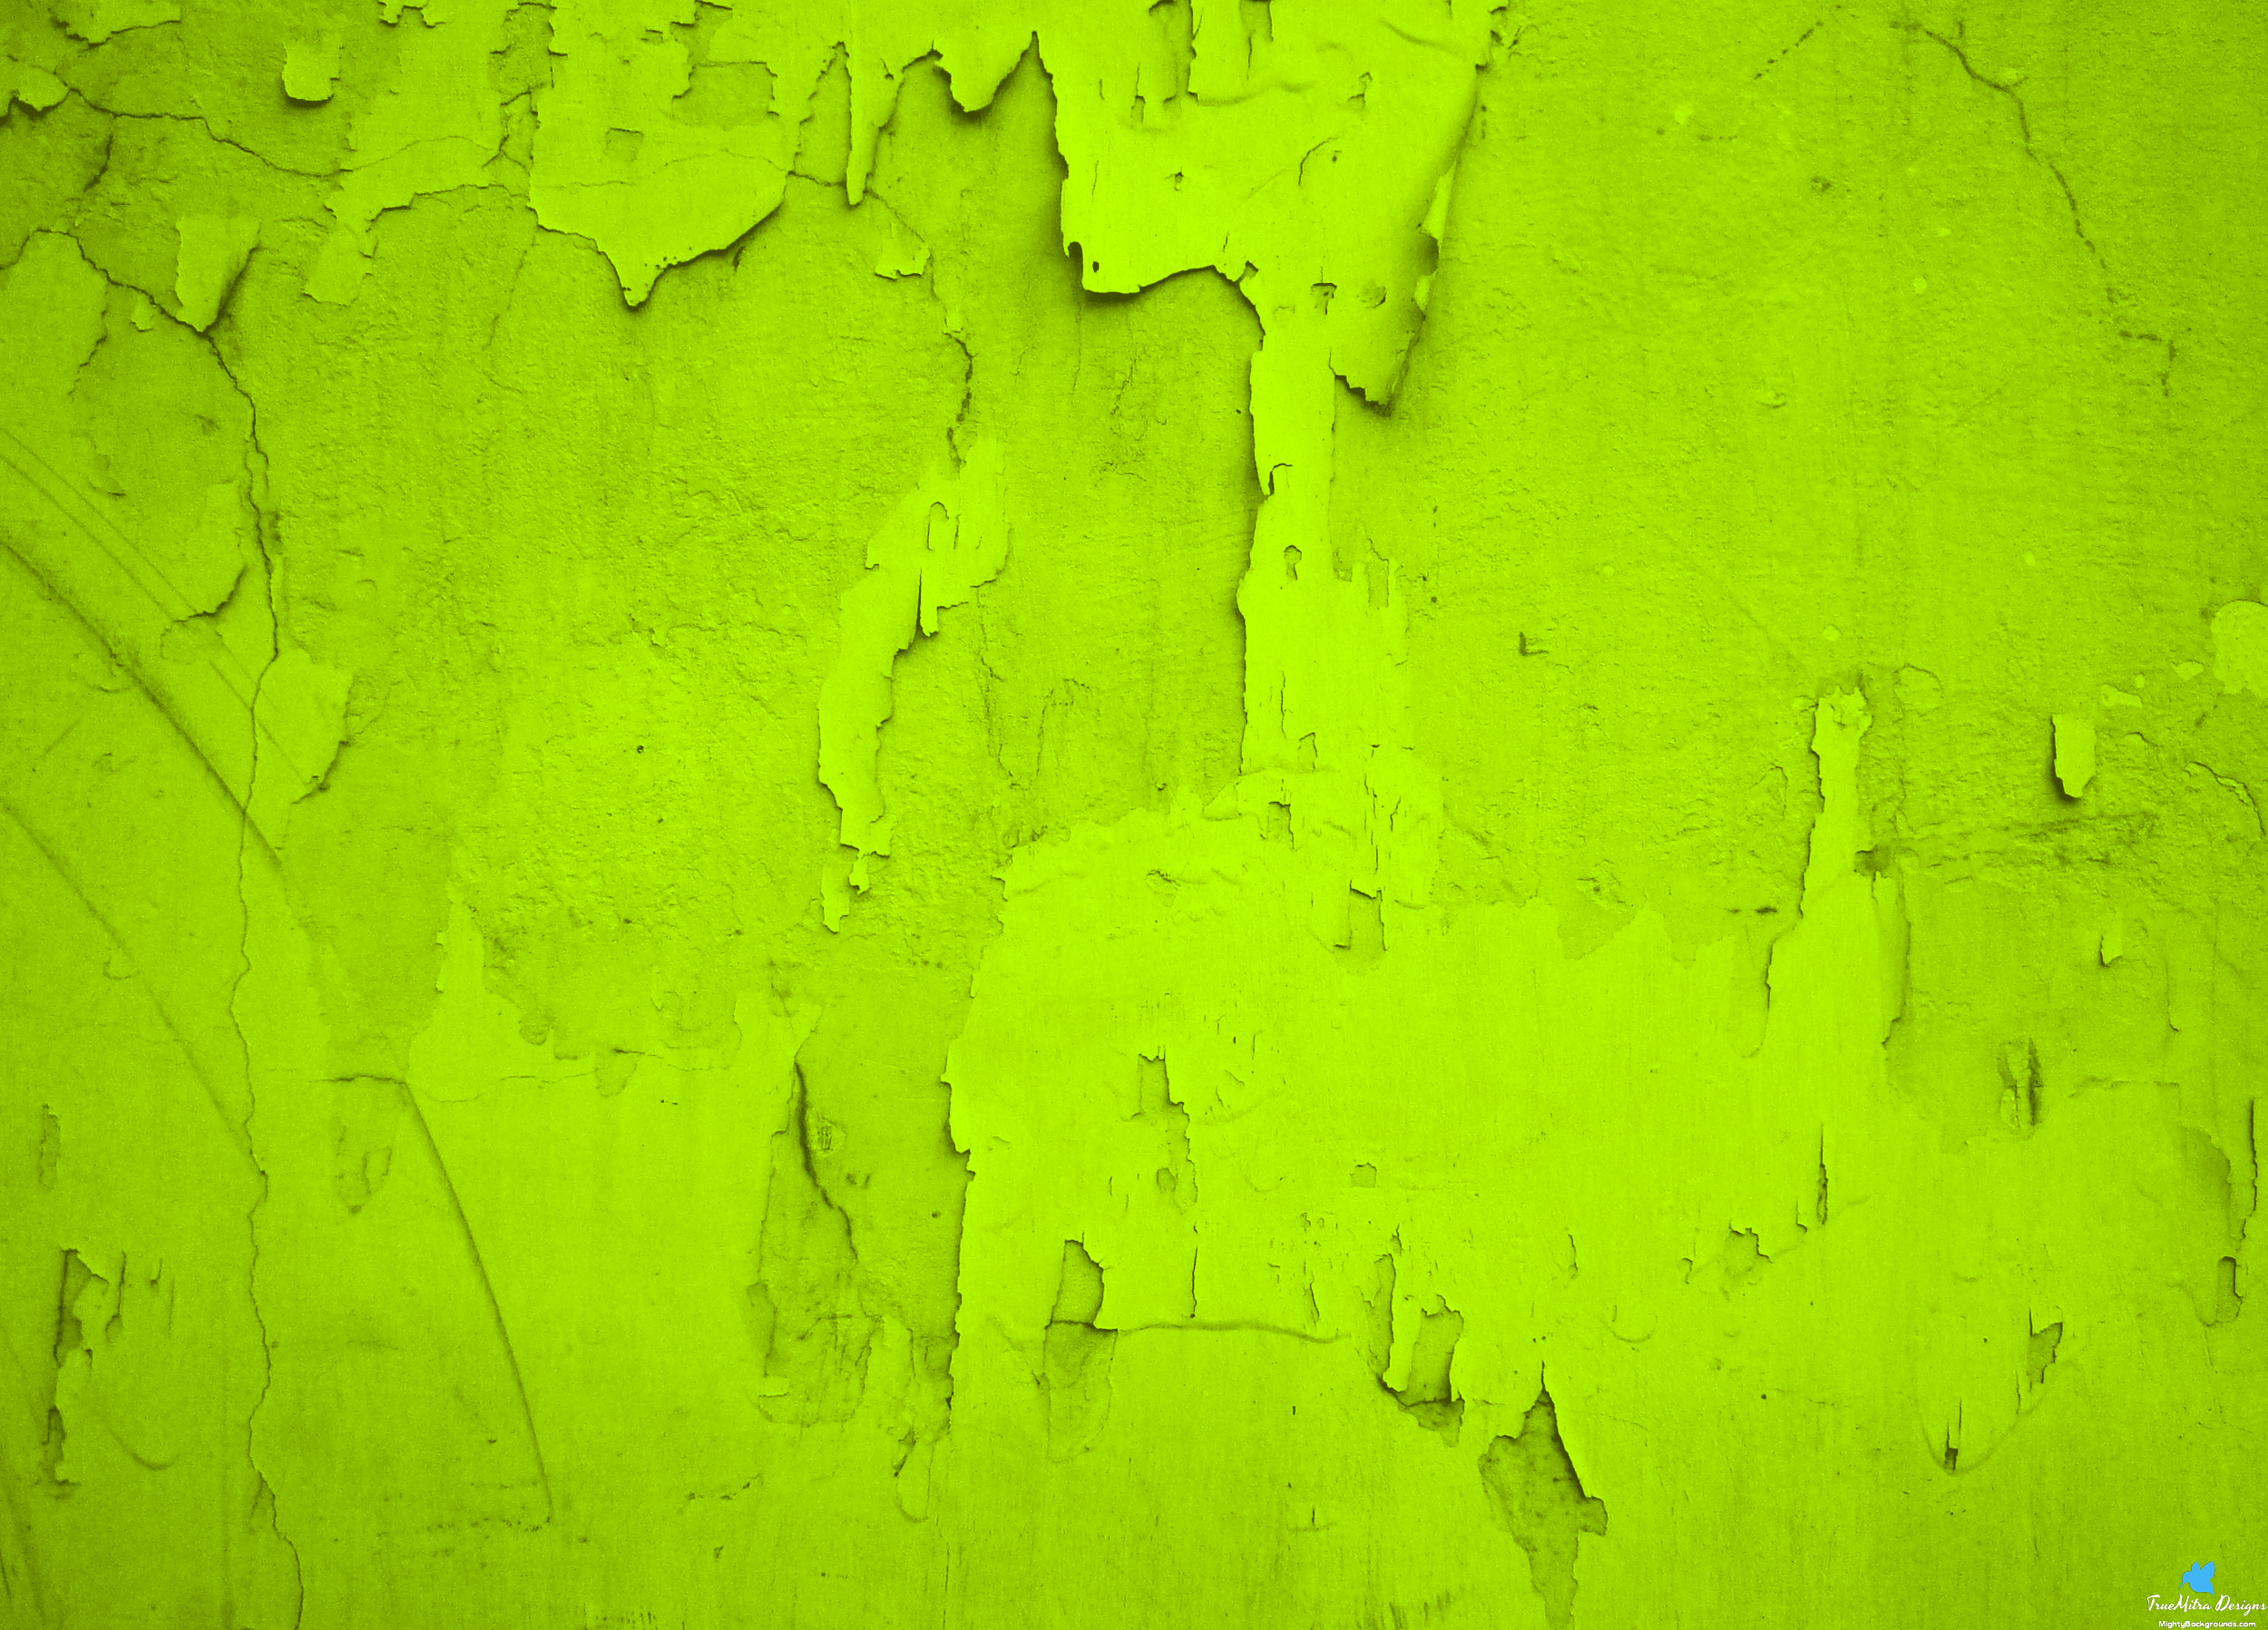 Green Wallpaper HD Background